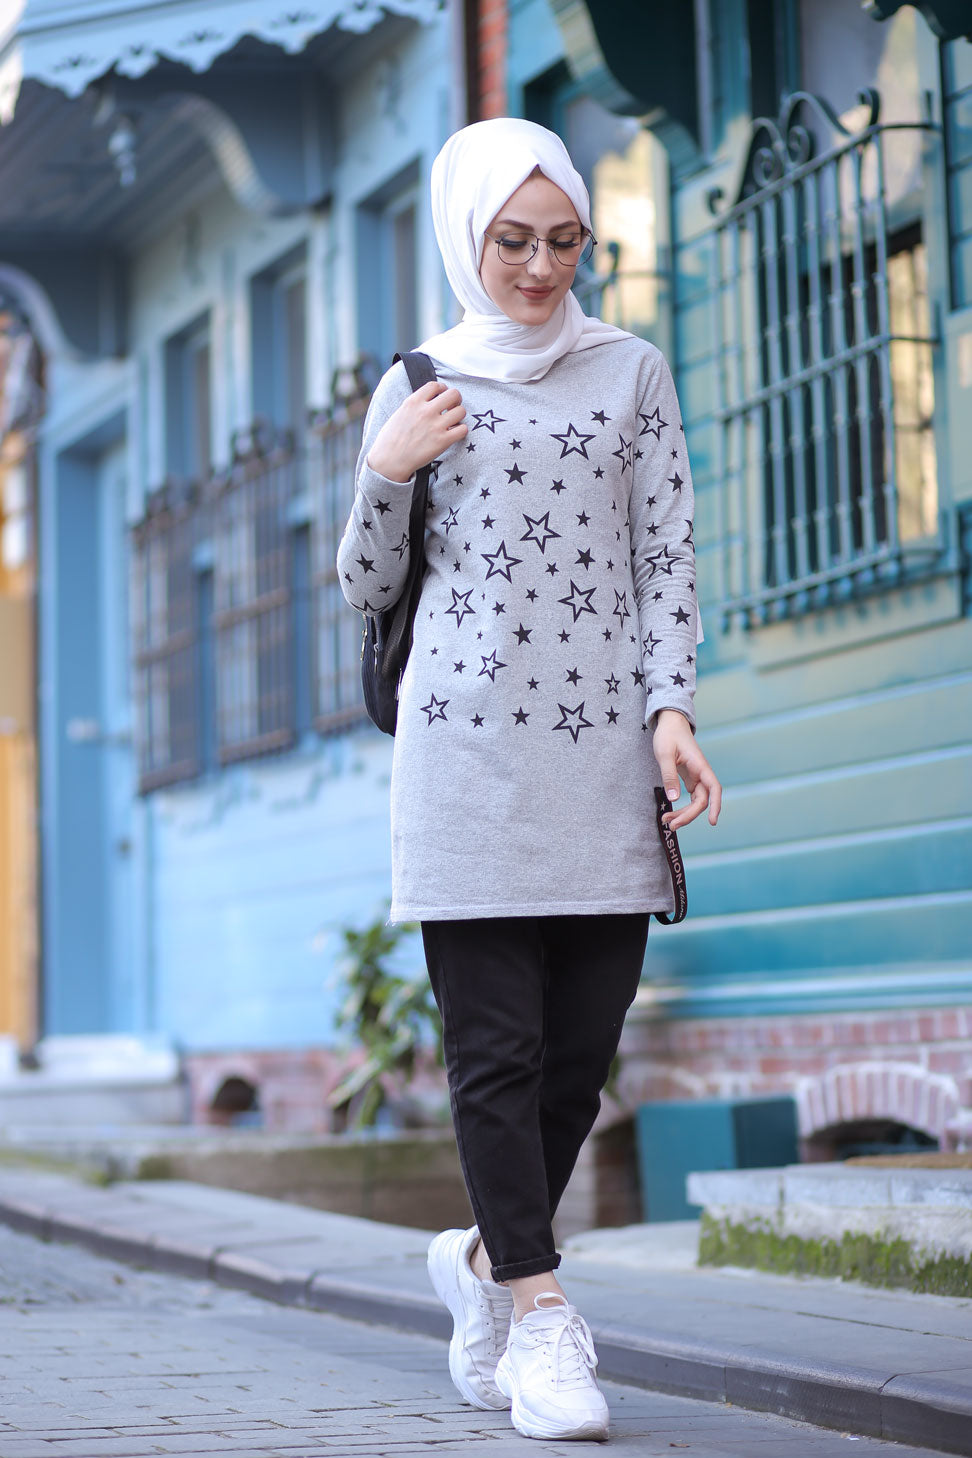 Tunic Star Printed Grey - 8385